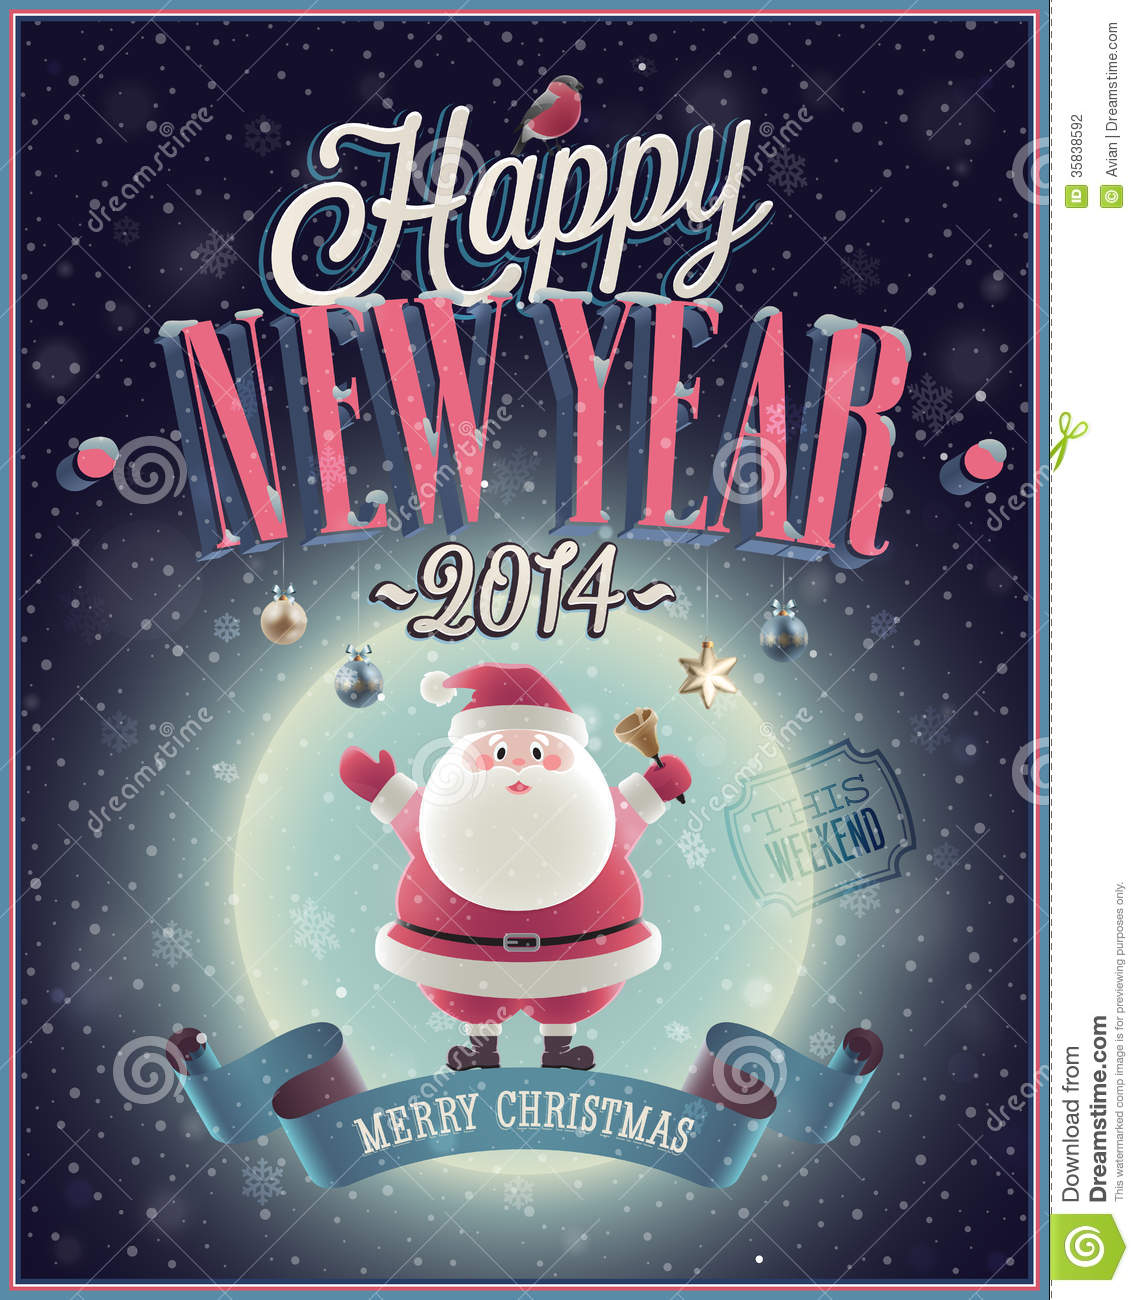 New Year Poster With Santa  Stock Vector   Illustration of     Download New Year Poster With Santa  Stock Vector   Illustration of  illustration  happy